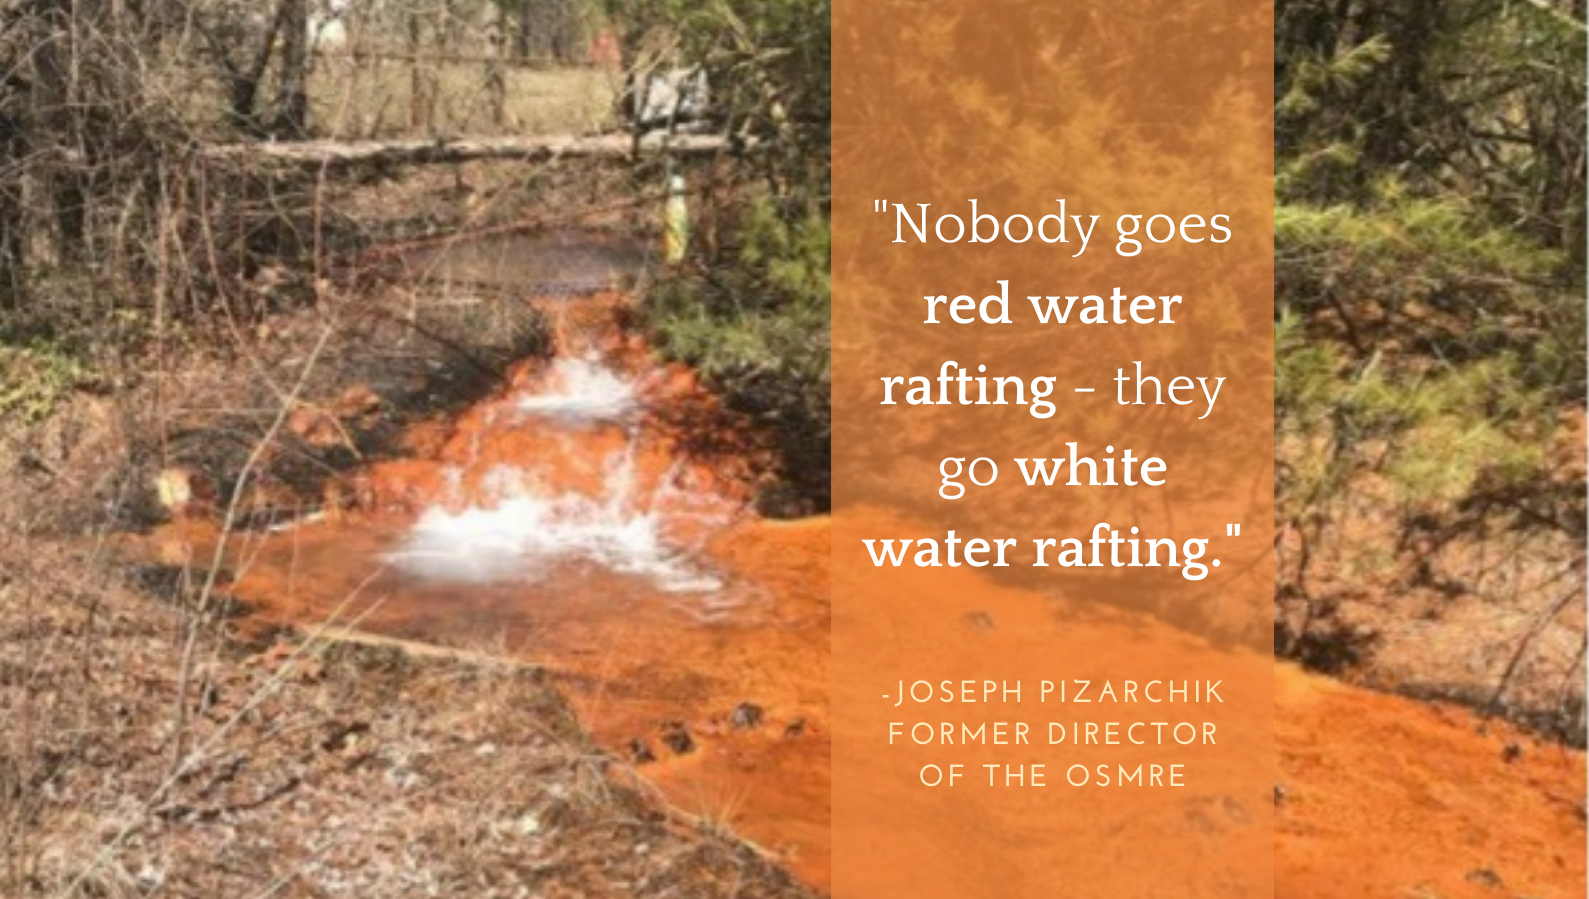 """Image of acid mine drainage with quote: """"Nobody goes red water rafting - they go whitewater rafting."""""""